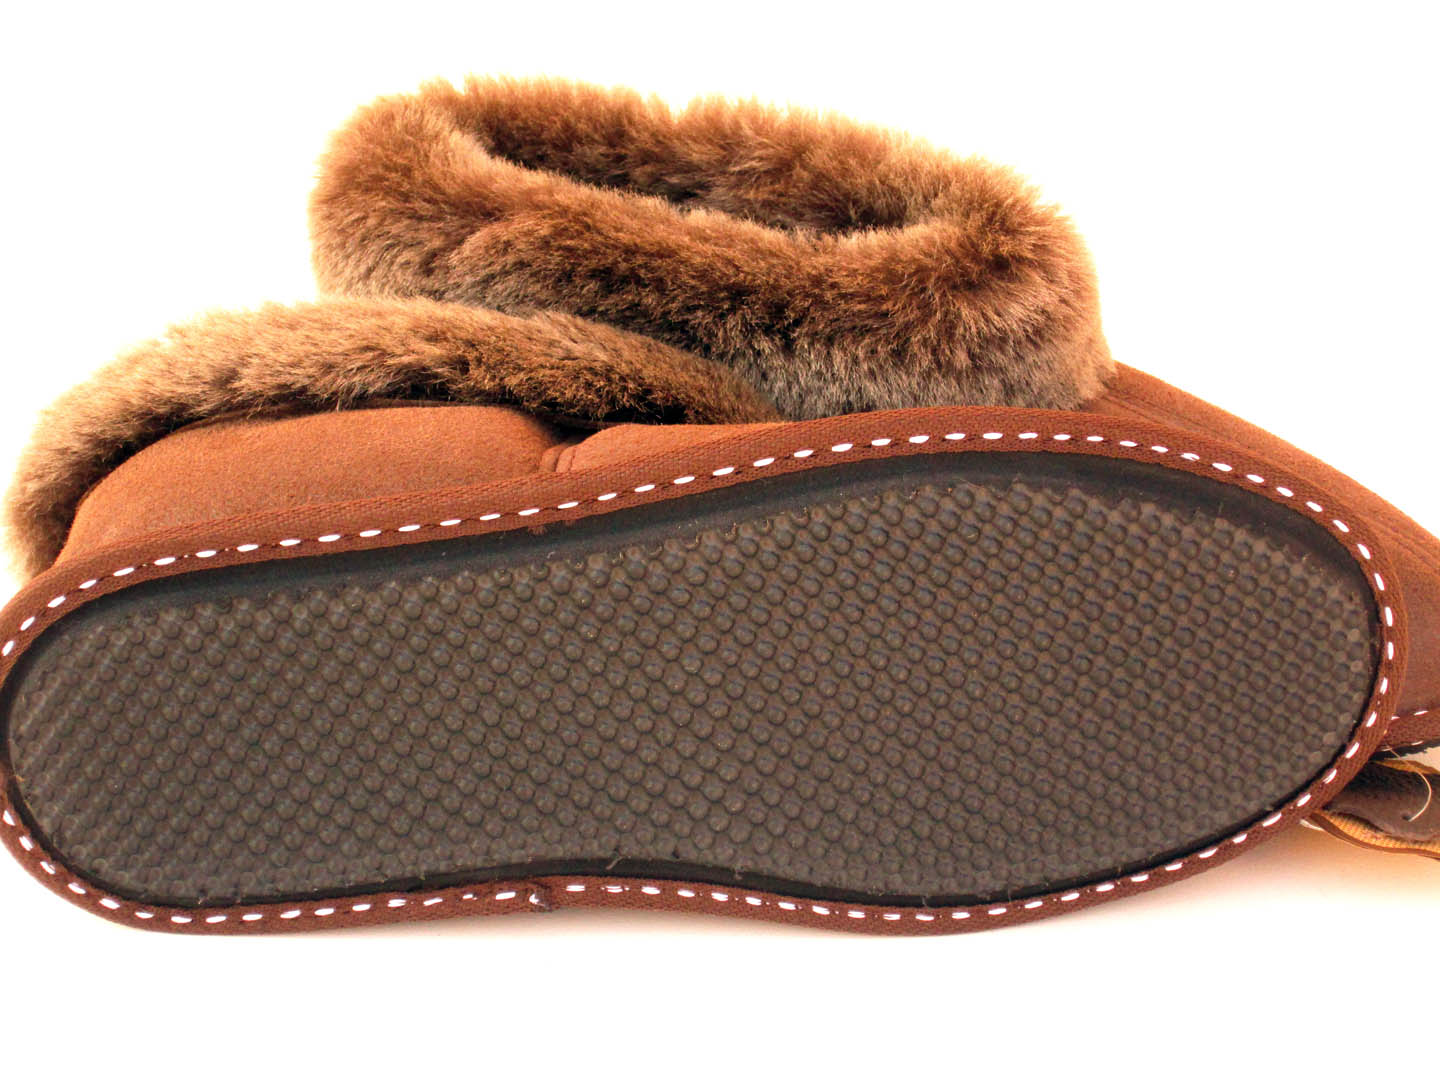 Sheepskin Slippers Brown Quot Krek Quot Velis Leather